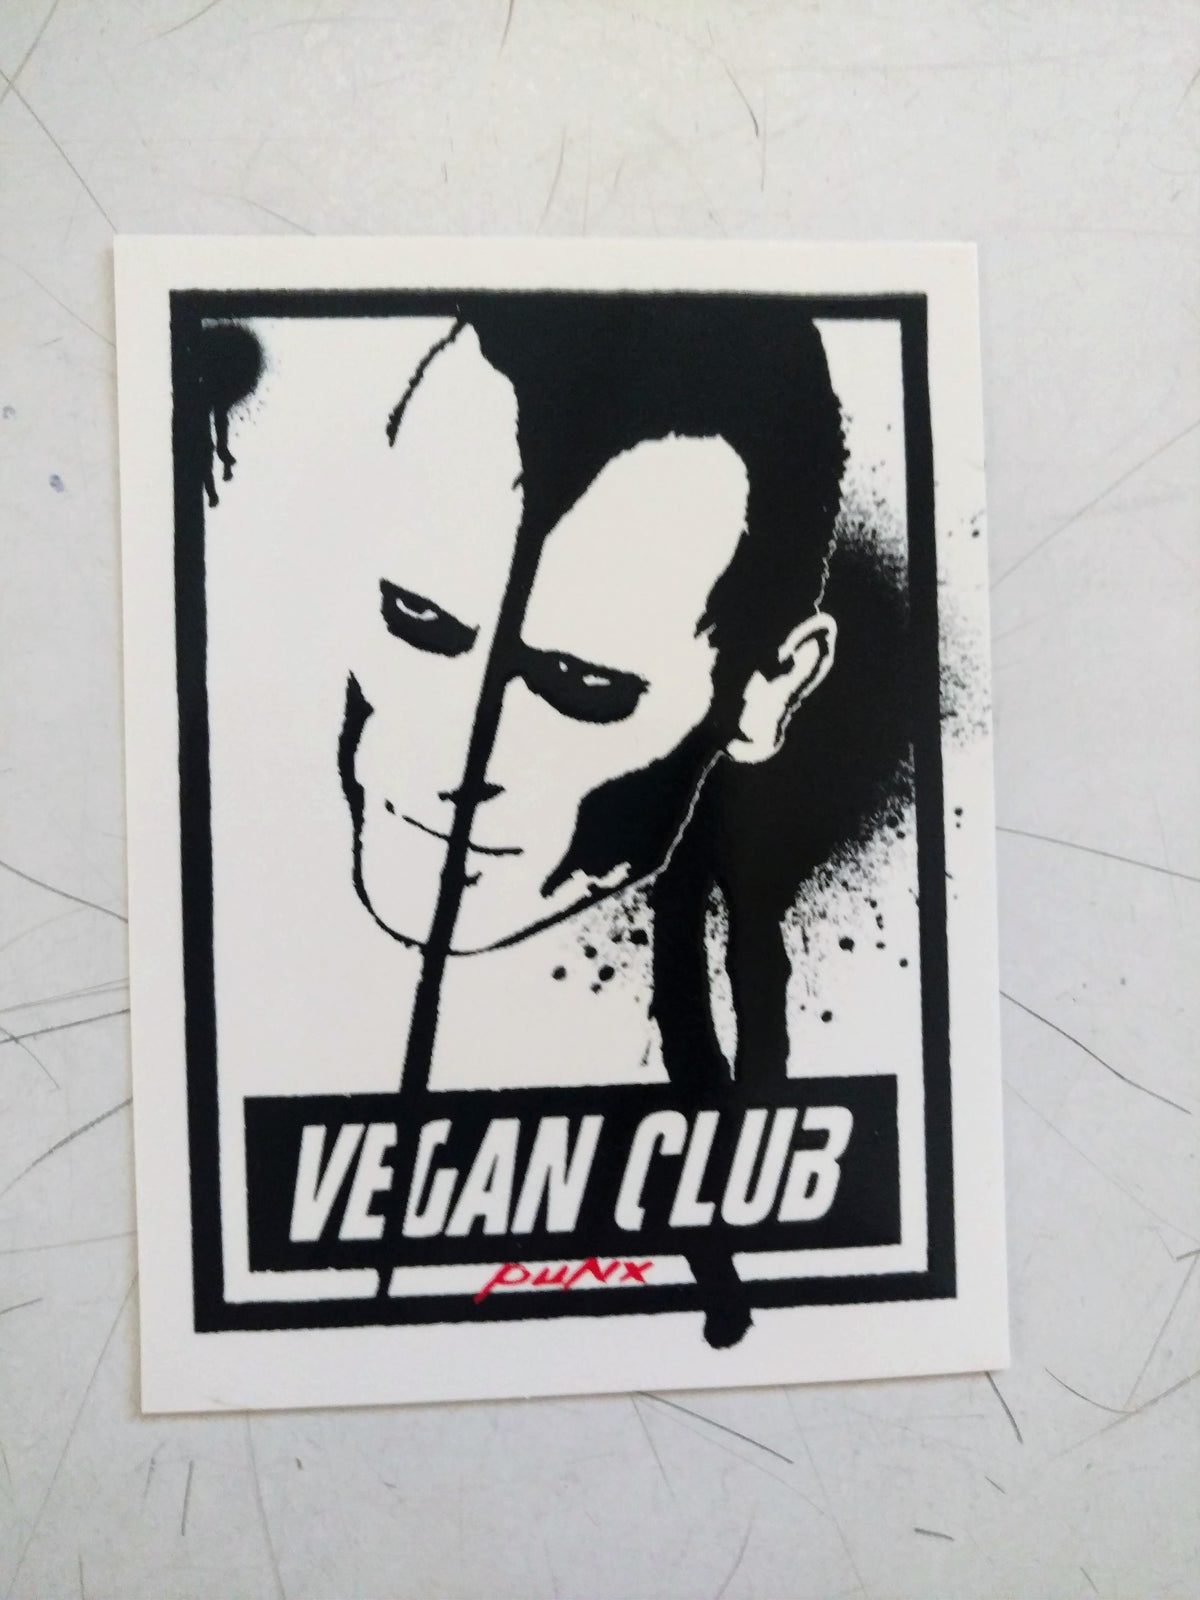 SOLD OUT - Spread the Word with 12 Vegan Club Stickers with Doyle Wolfgang von Frankenstein, Misfits by Le Fou, collab with Anthony Proetta Jr